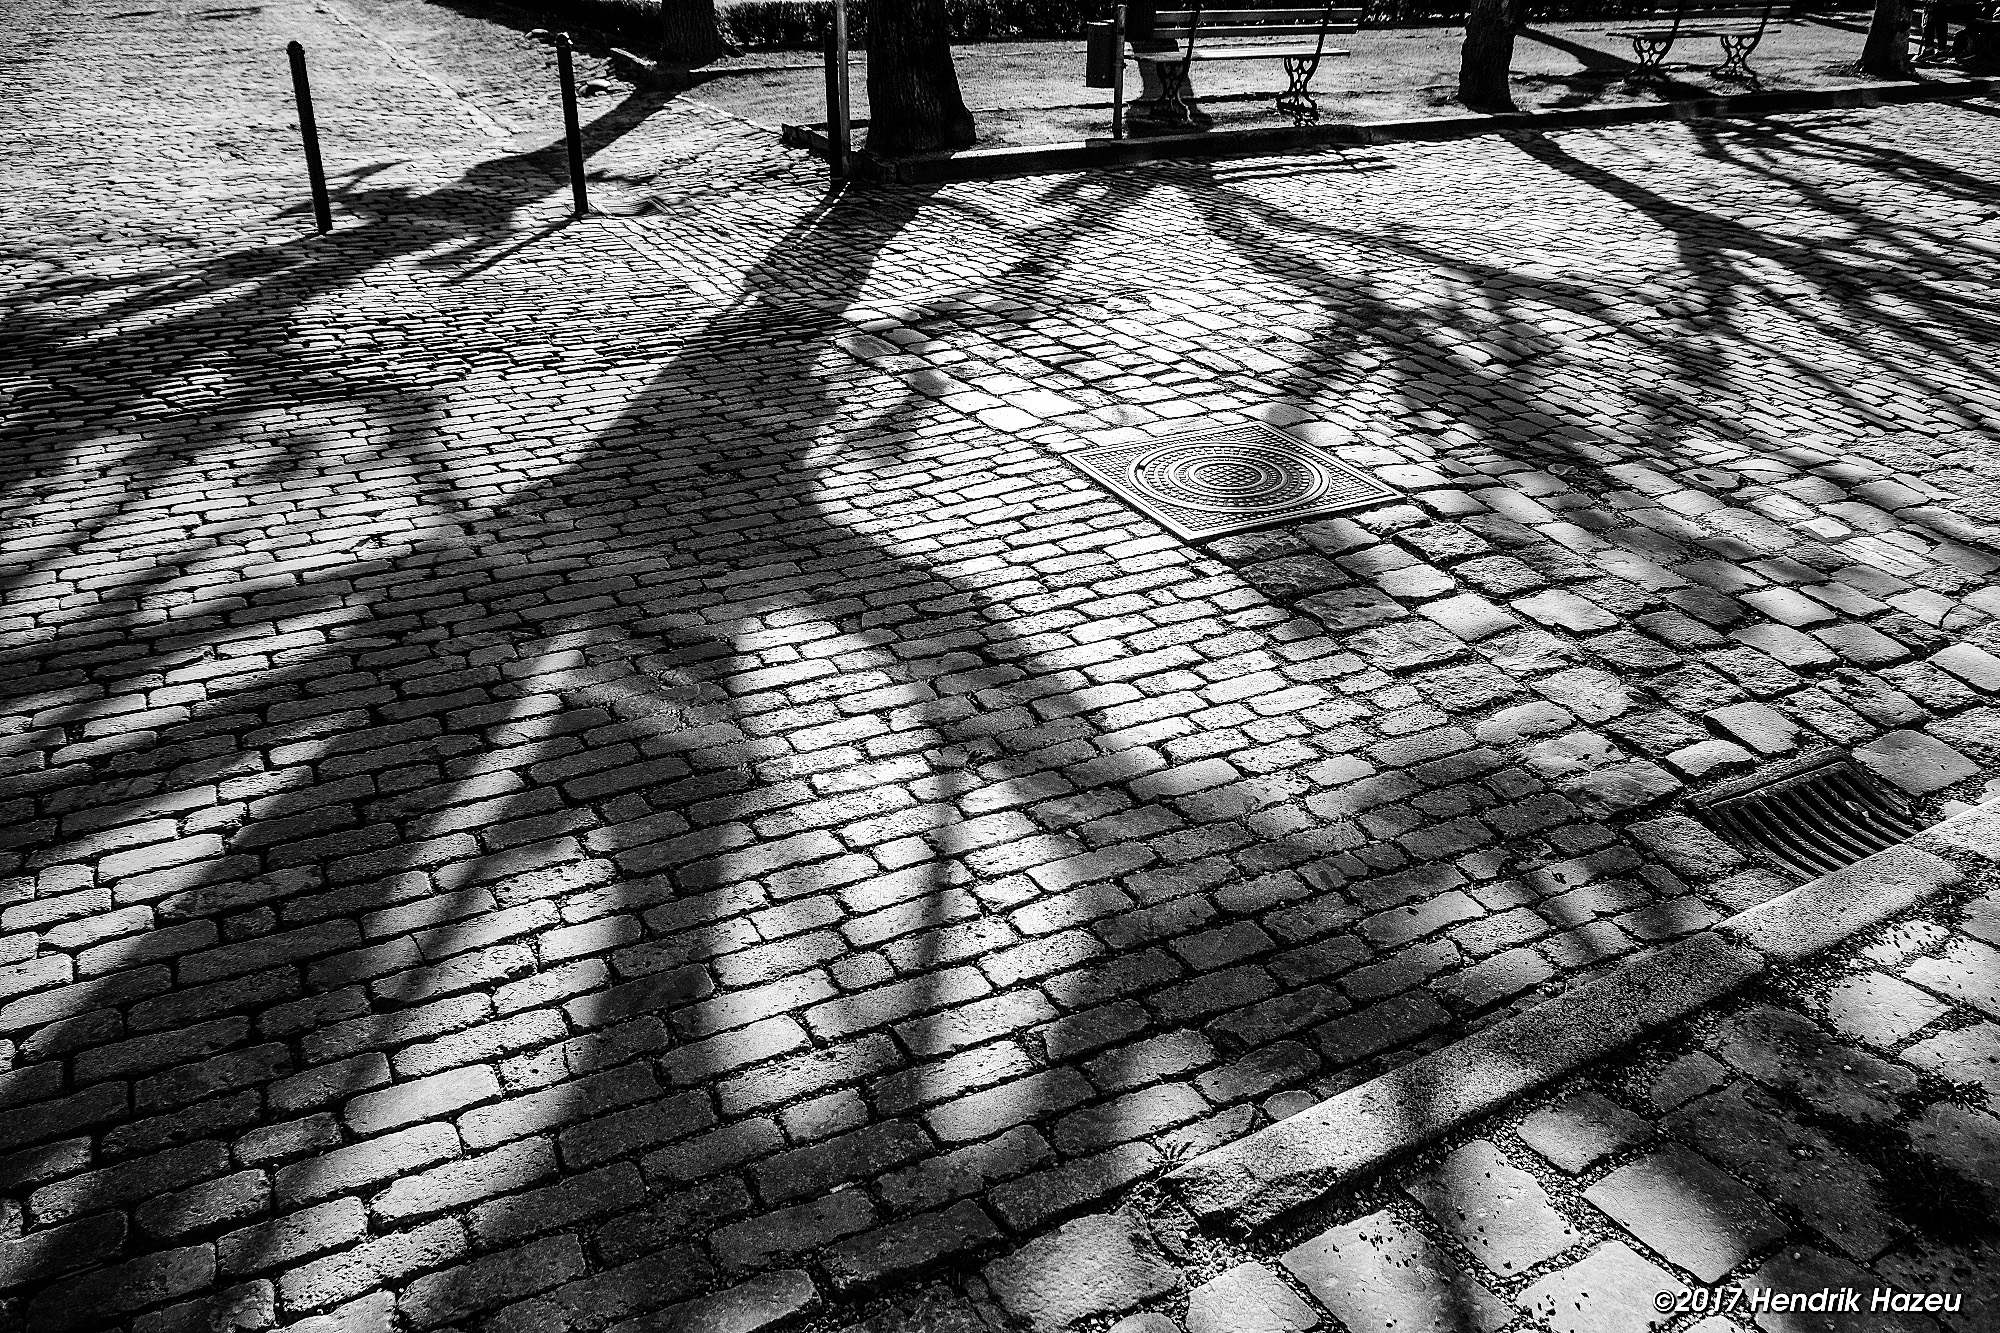 Shadows on the street, Fuji X-T2, with XF 18-135 mm WR at 18 mm - f5.6 - 1/950 sec - ISO 400